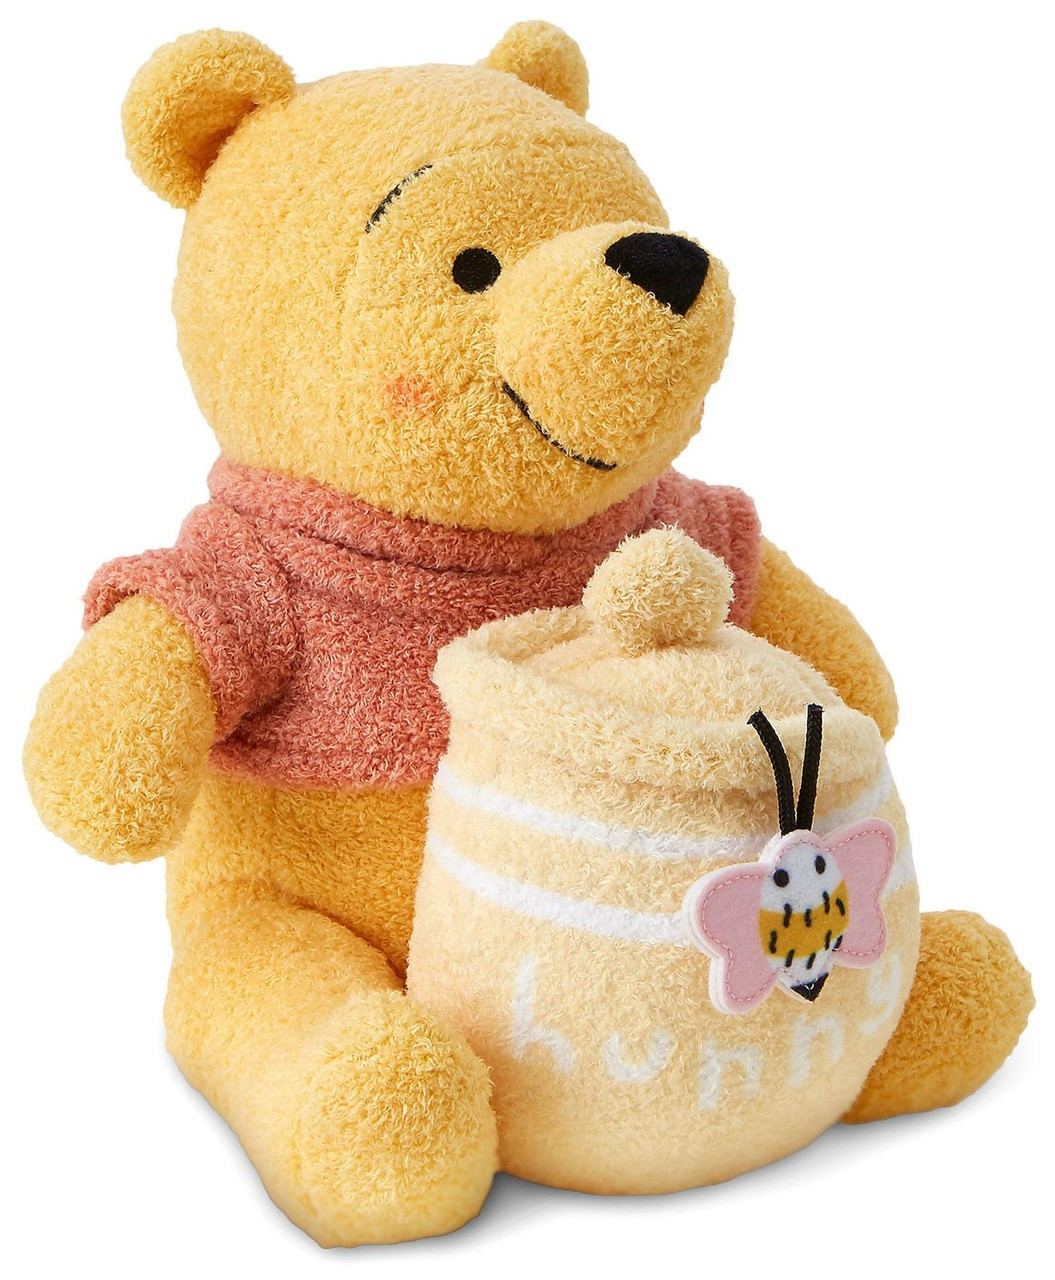 cc9ca066014e Disney Disney Baby Winnie the Pooh with Hunny Jar Exclusive 8.25 Plush -  ToyWiz